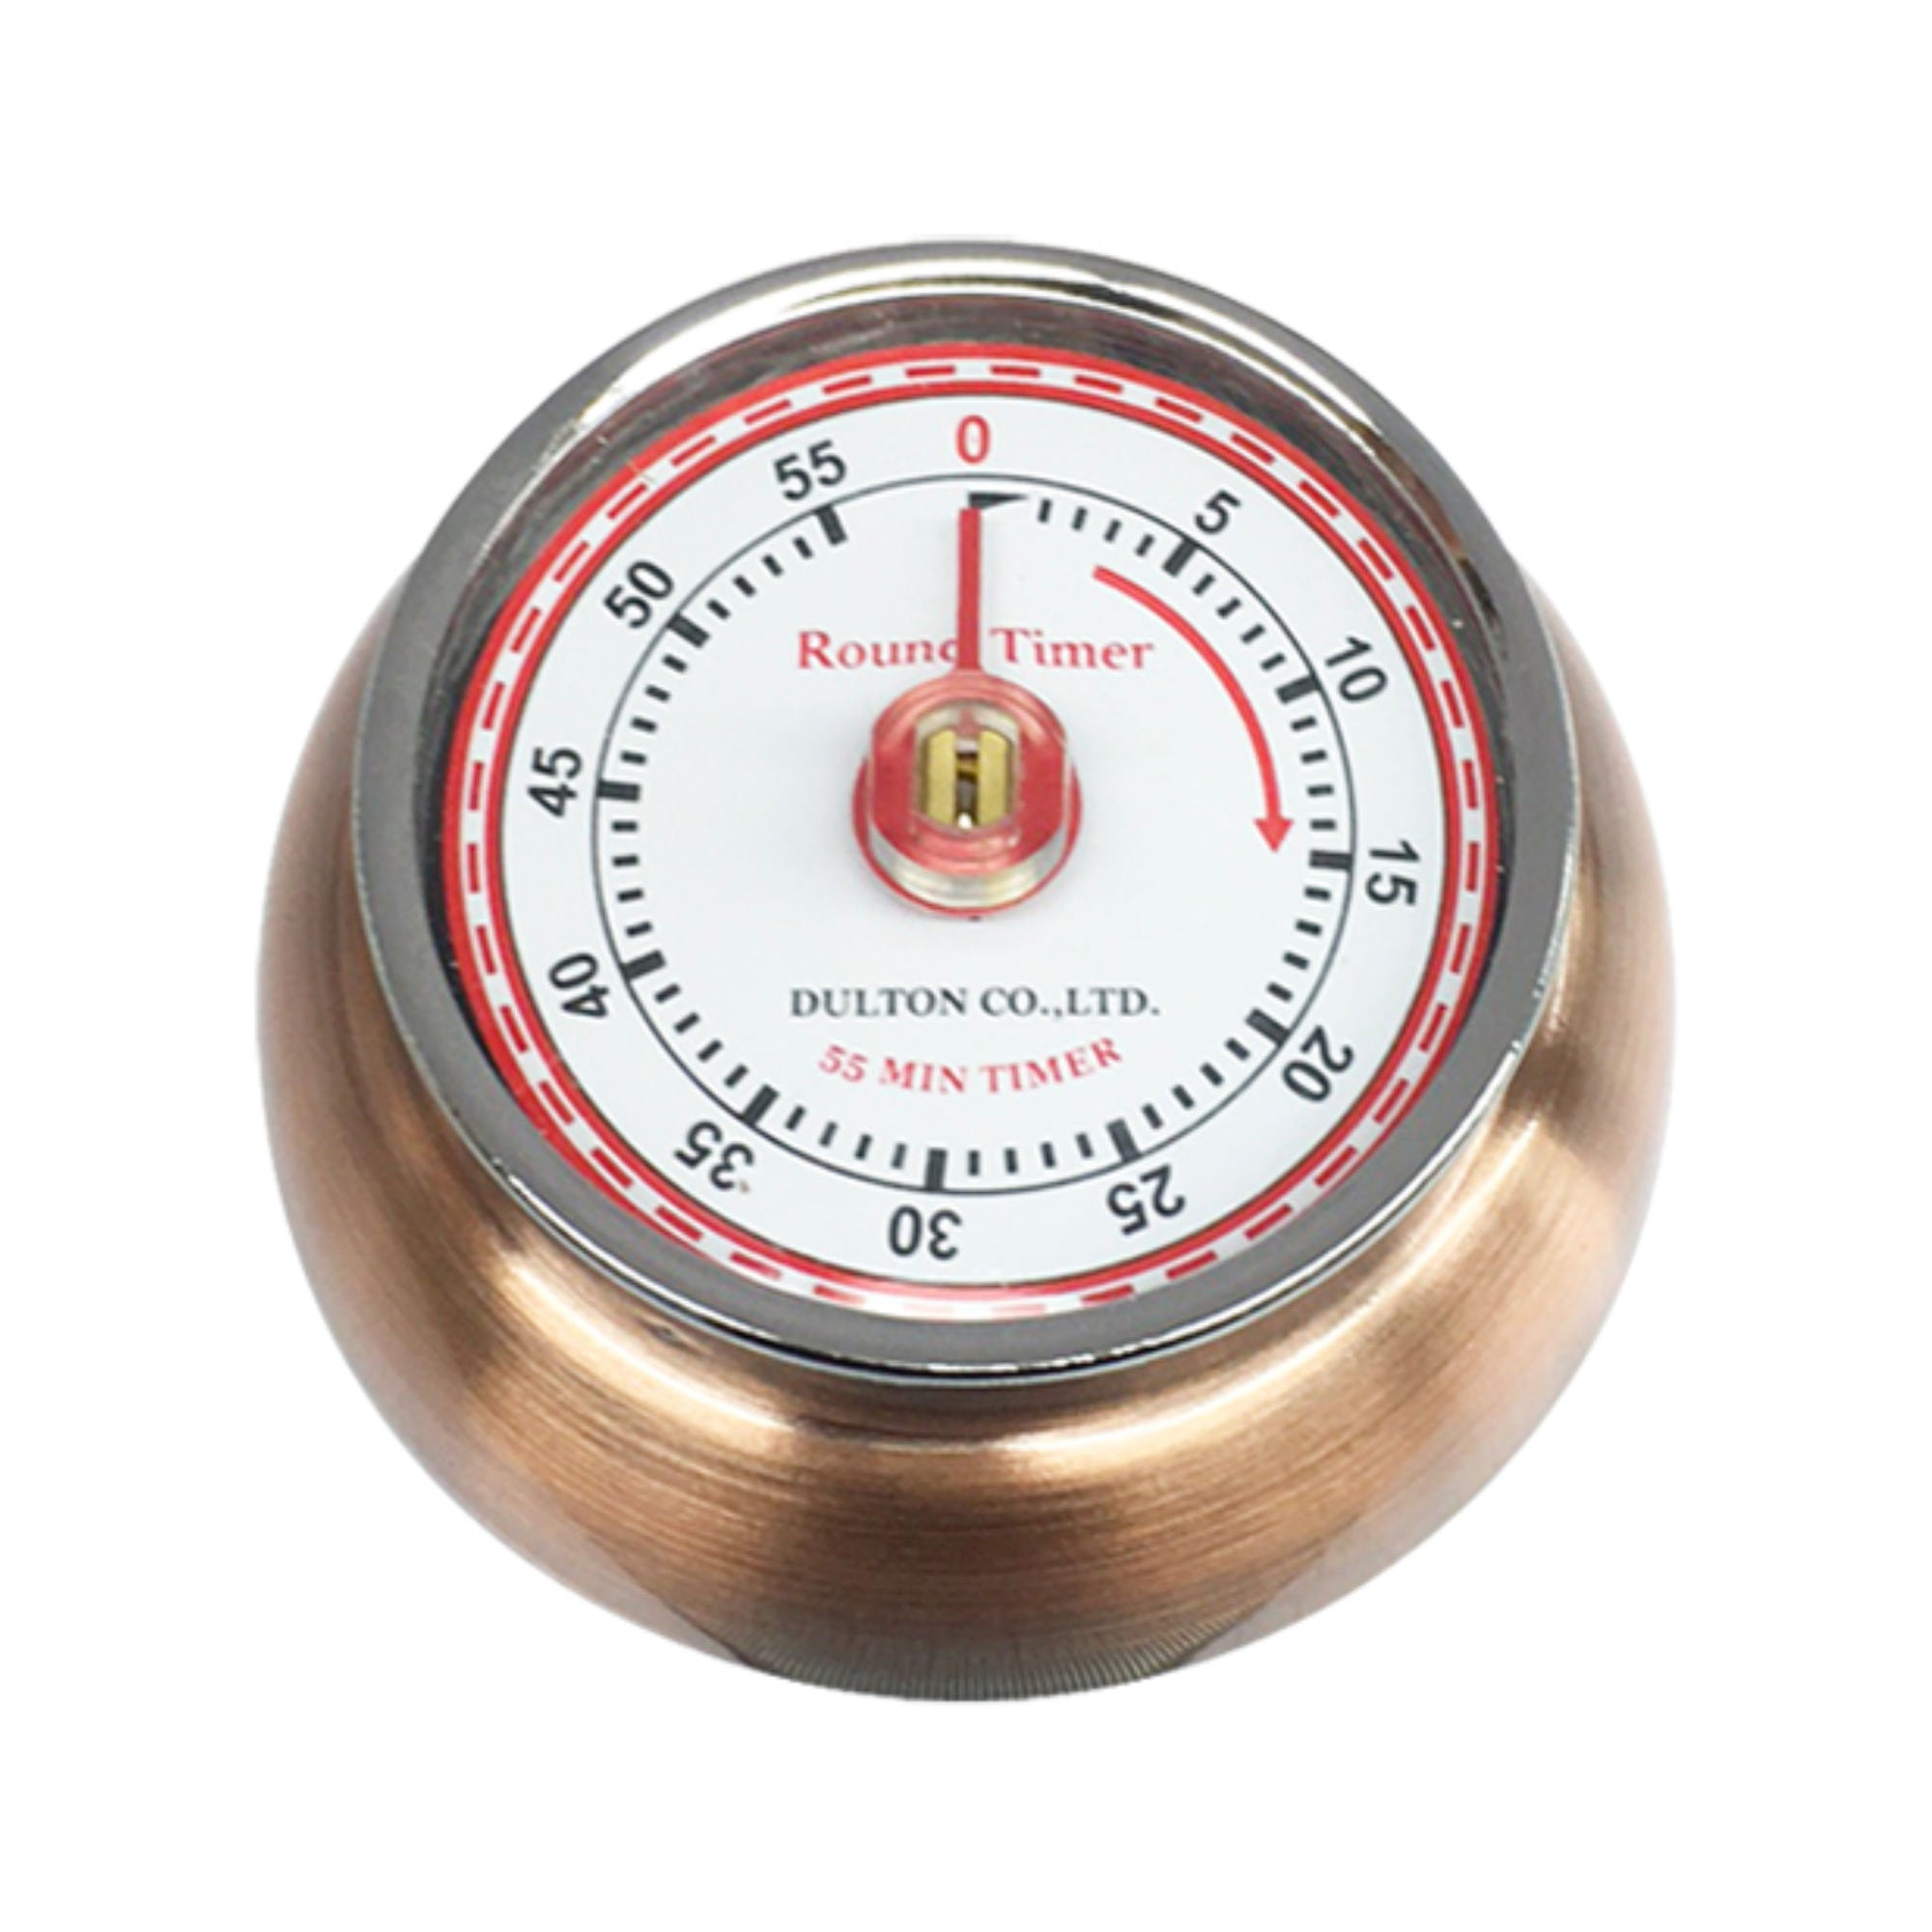 Dulton Kitchen Timer, antique copper